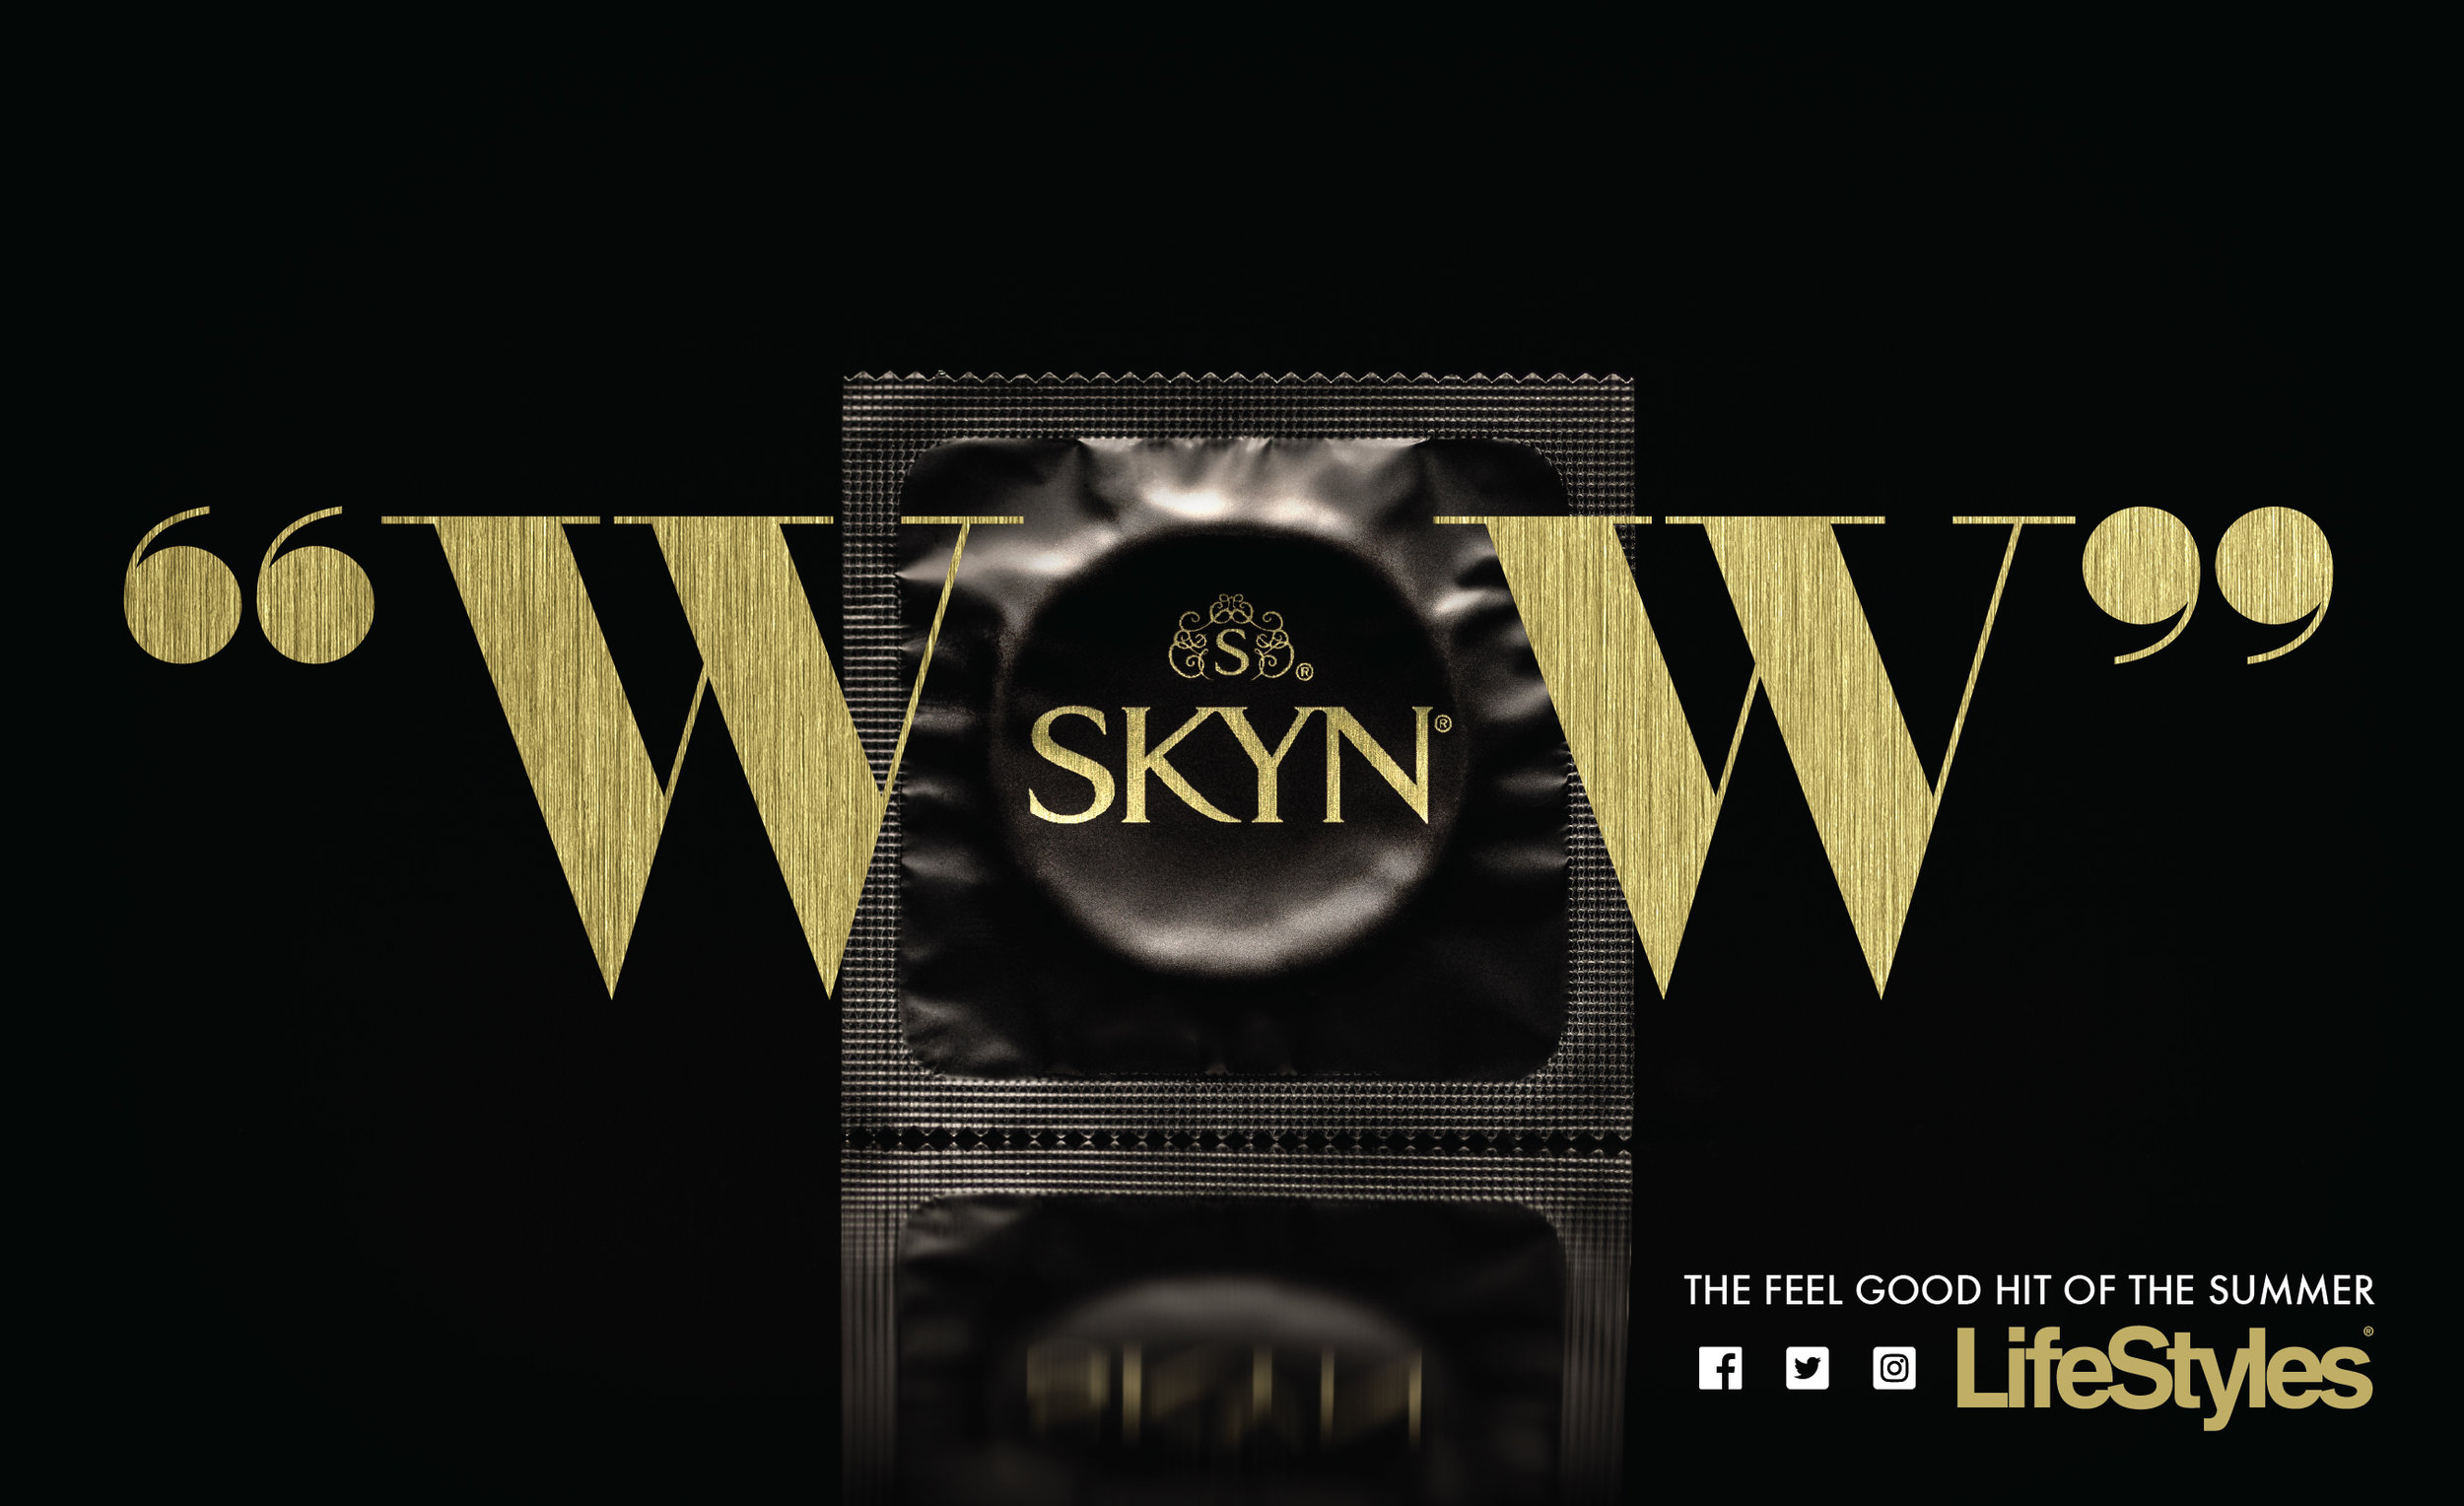 AD_02_SKYN_Small Product Ad Build.jpg